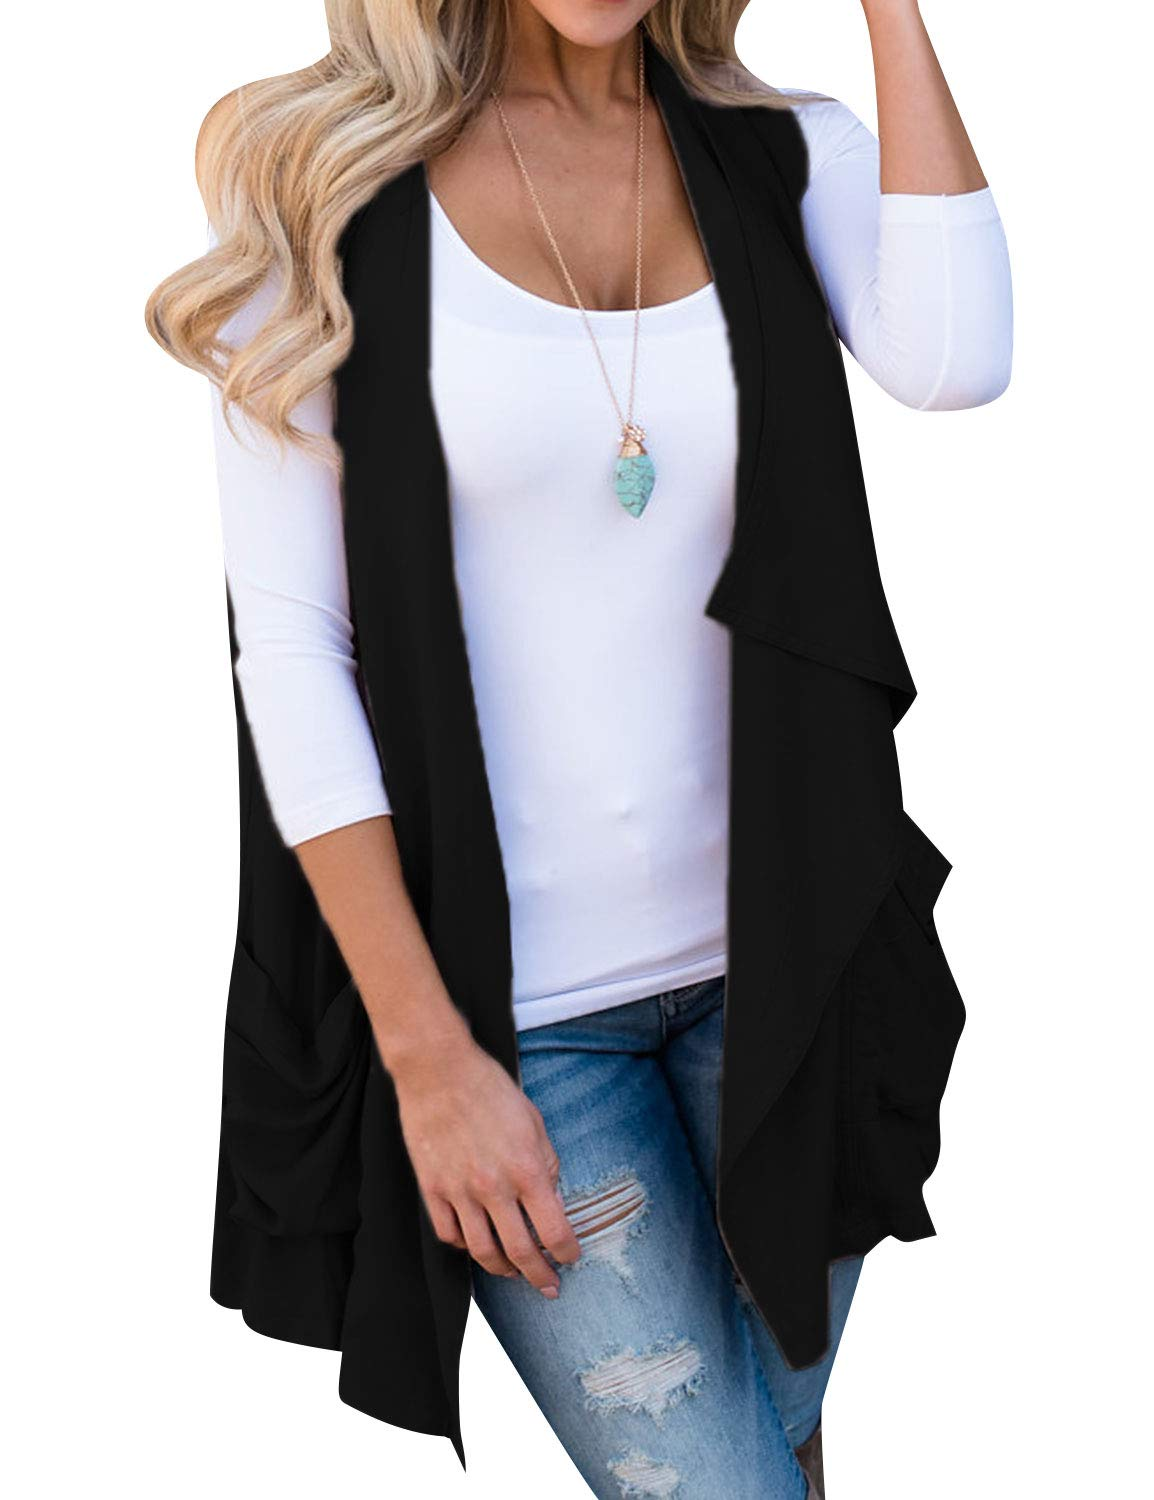 Ezcosplay Women Sleeveless Solid Color Asymmetric Cardigan Outwear with Pocket